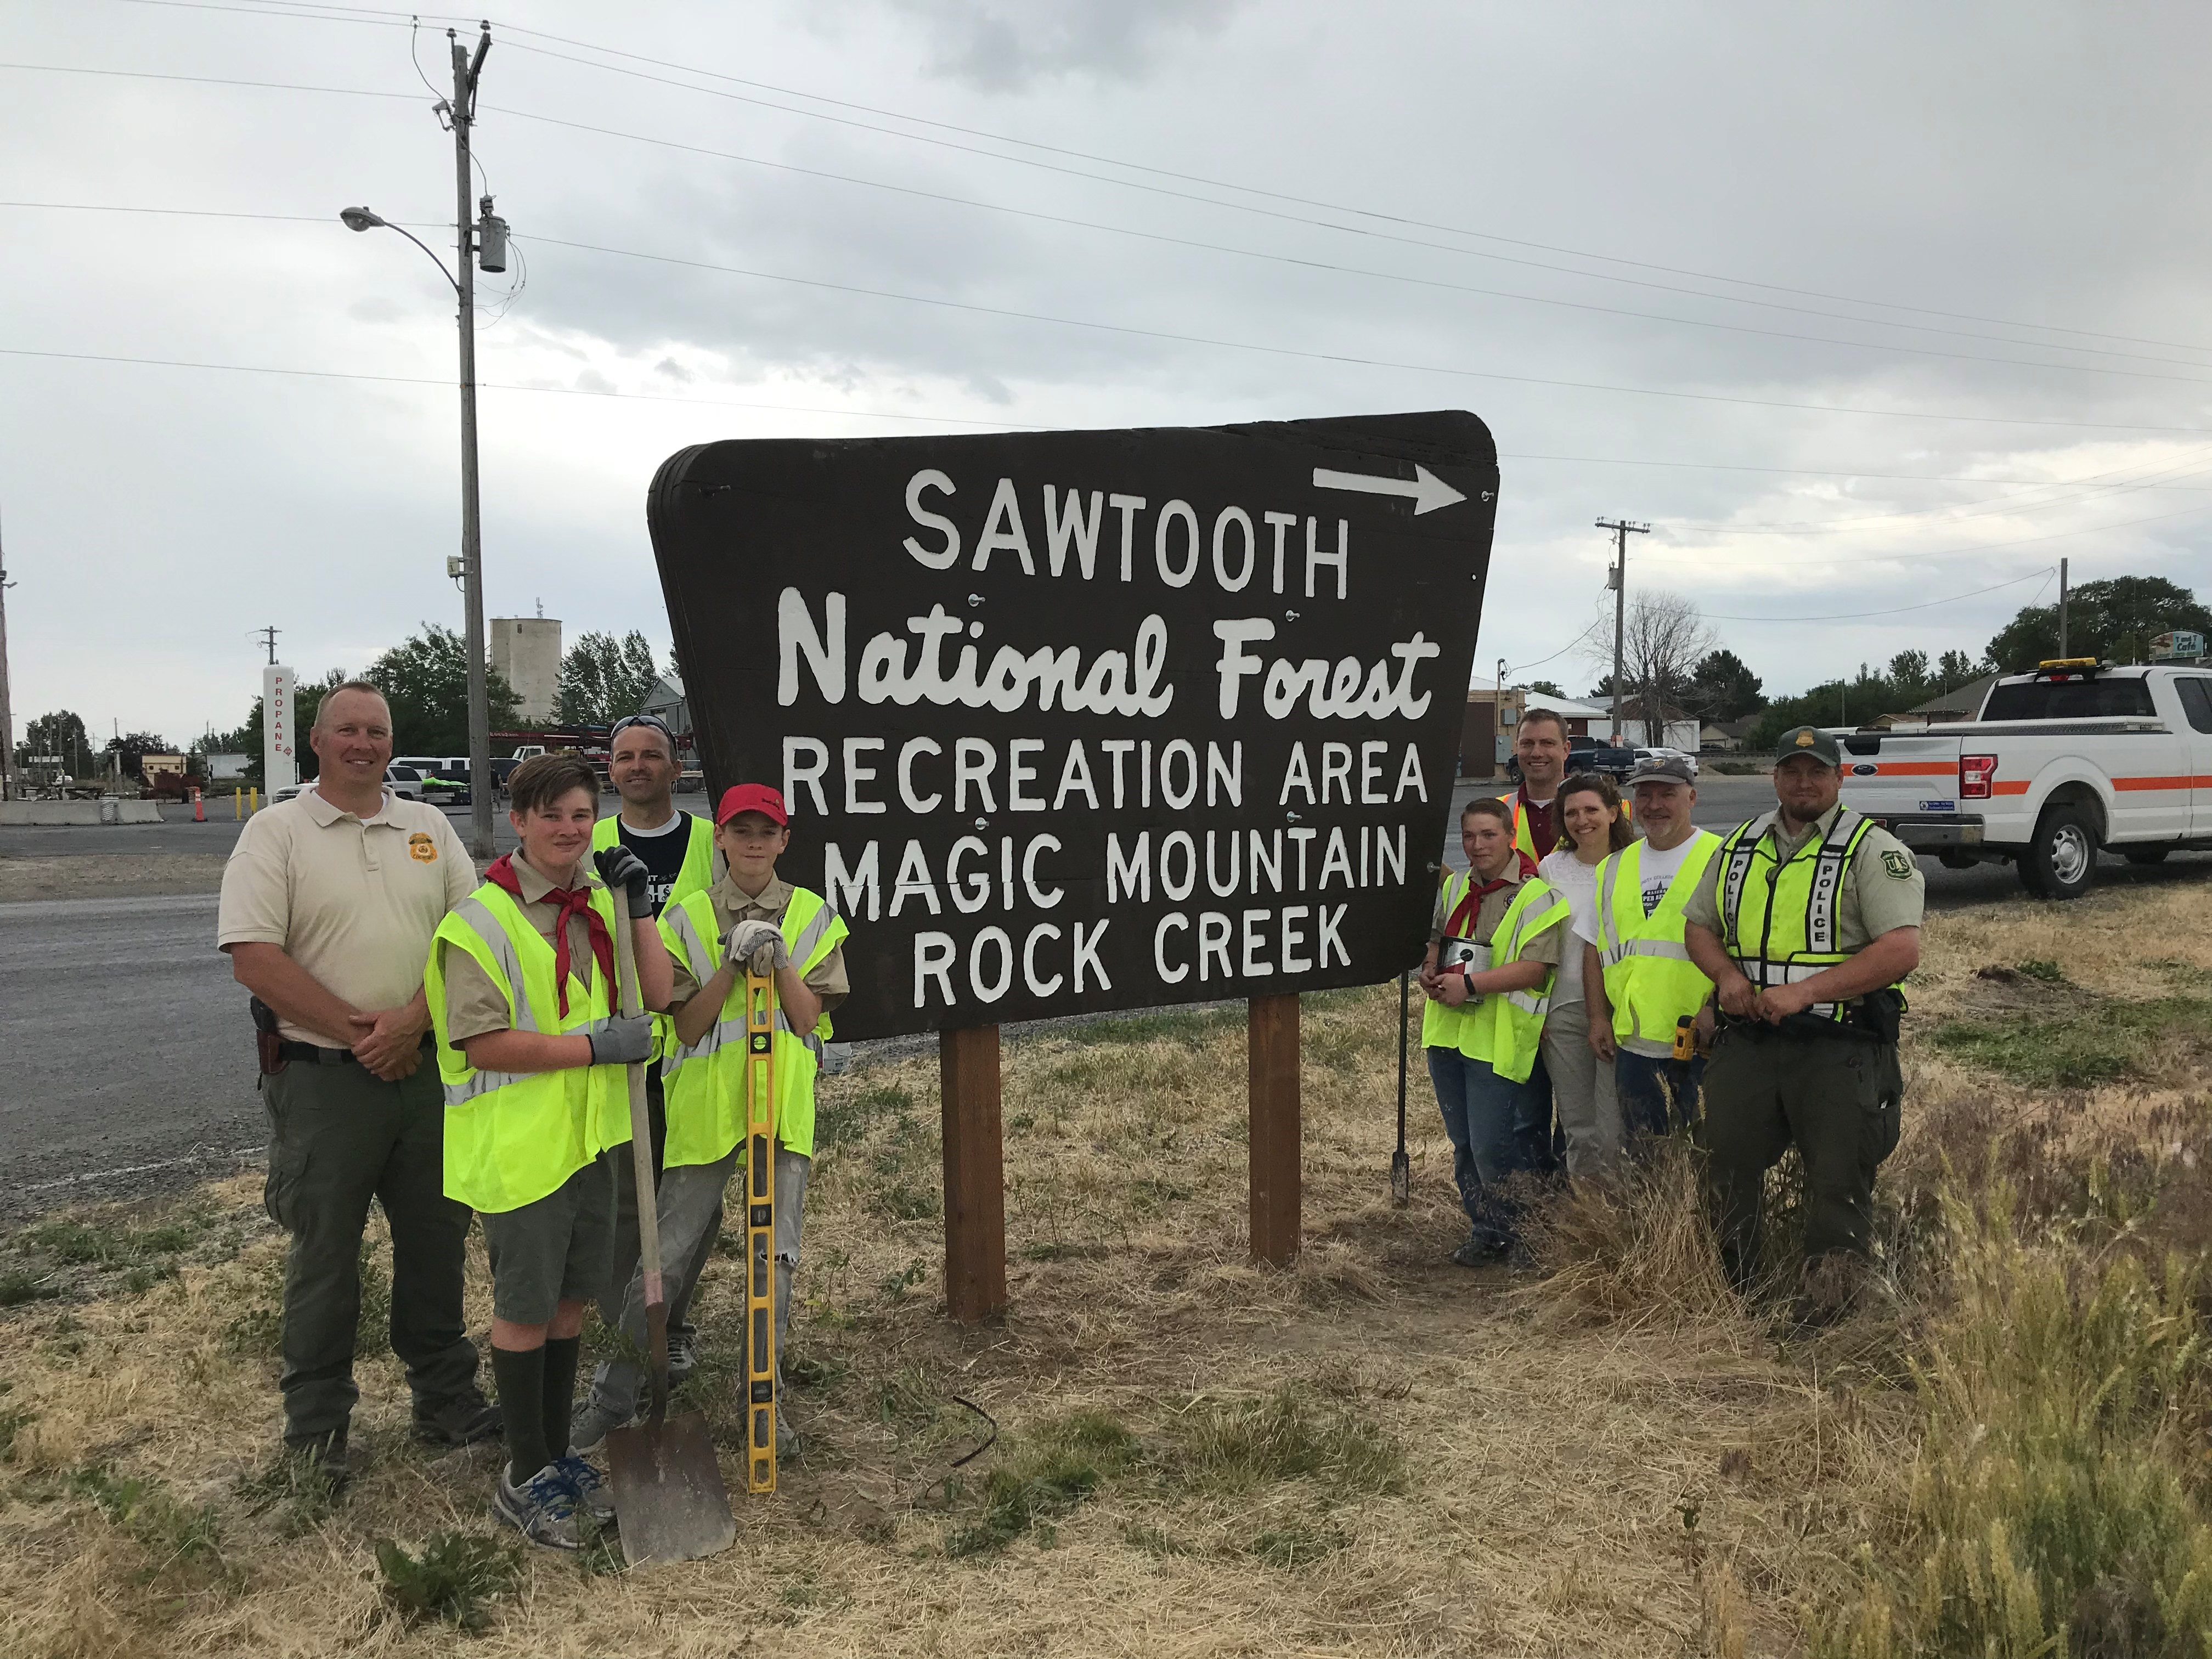 A group of adults and boy scouts standing next to a forest sign. One boy scout is holding a shovel.